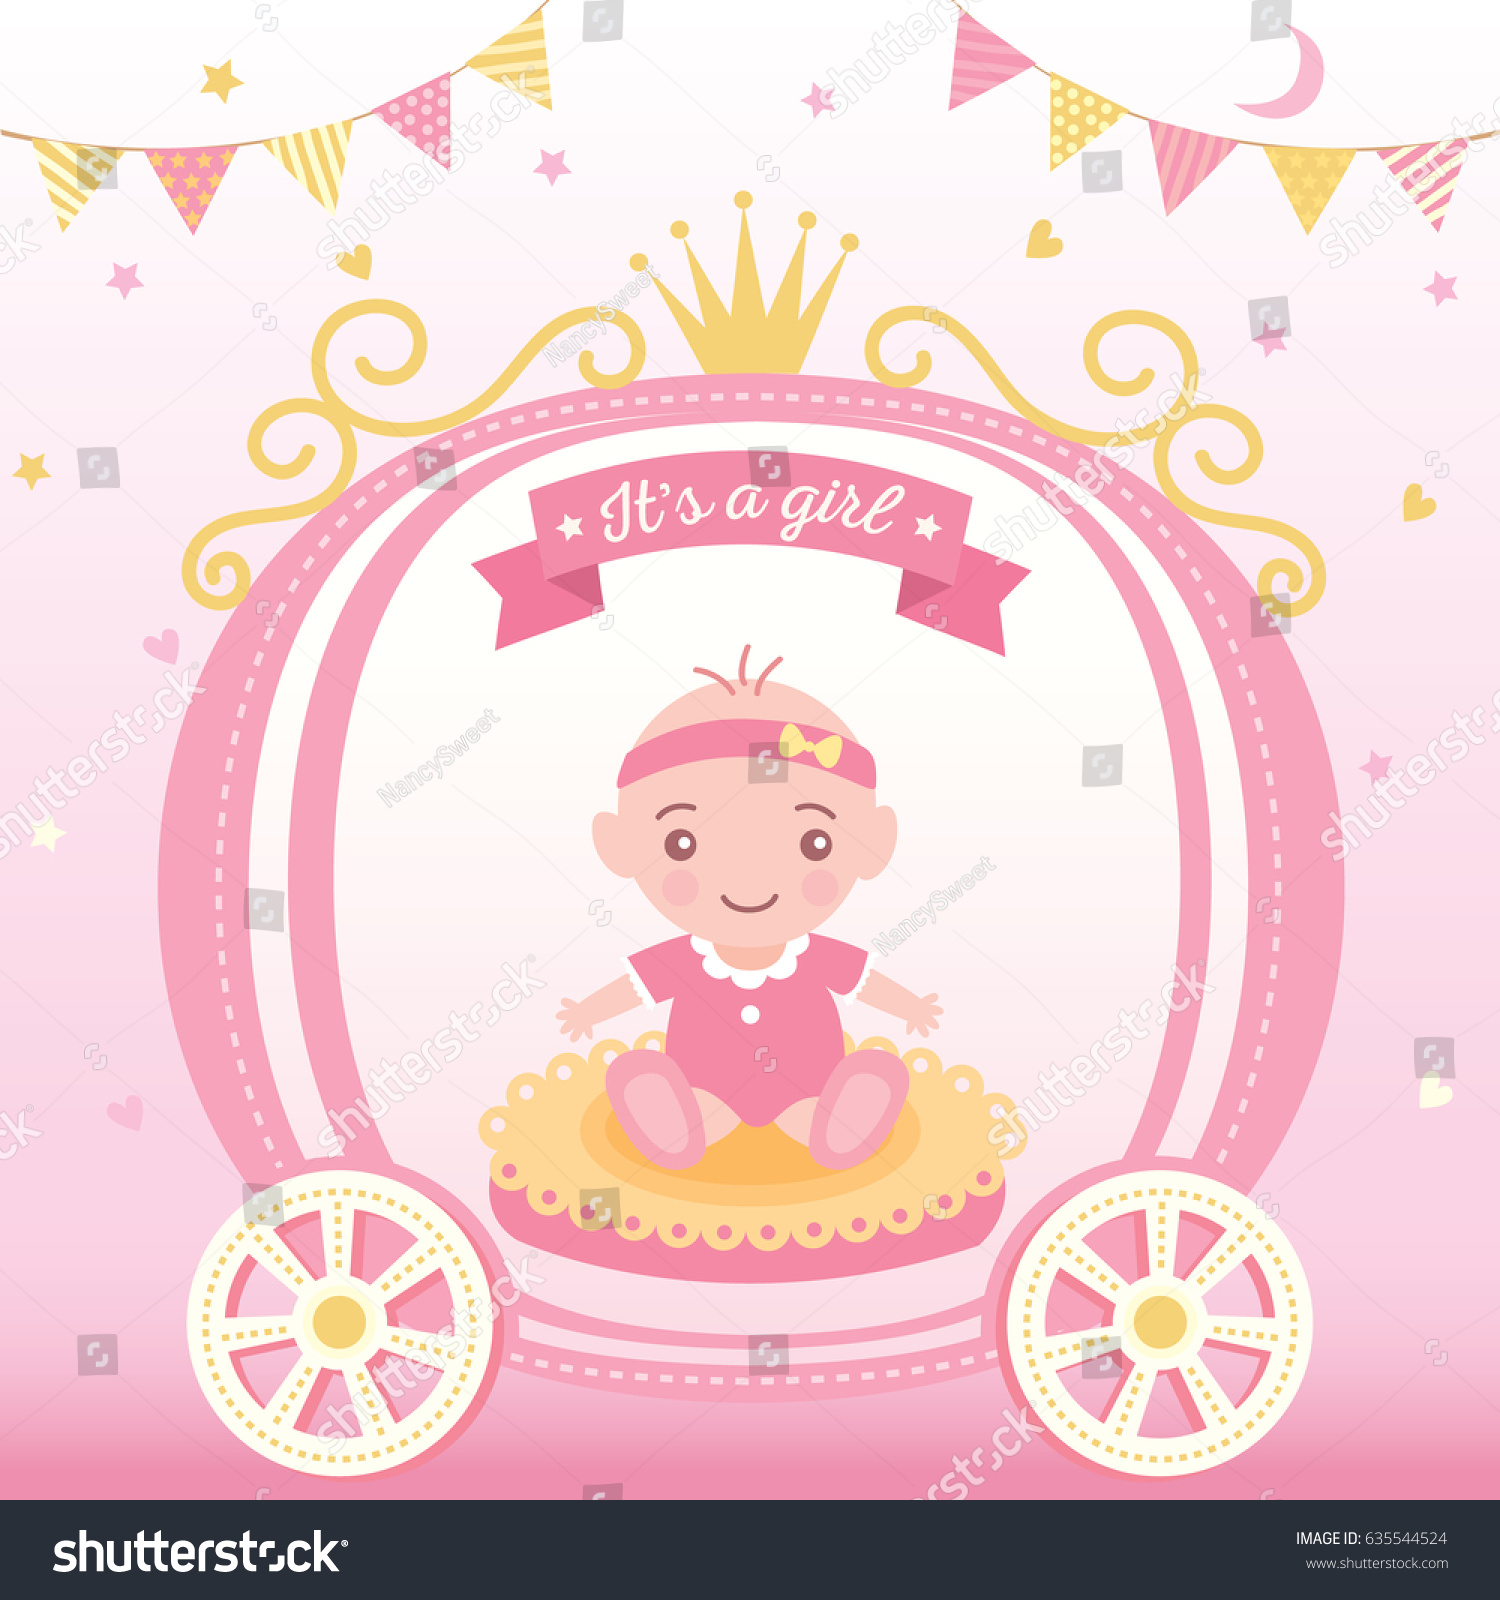 Illustration Vector Of Baby Shower Greeting Card For New Born Girls  Decorated With Princess Cart And